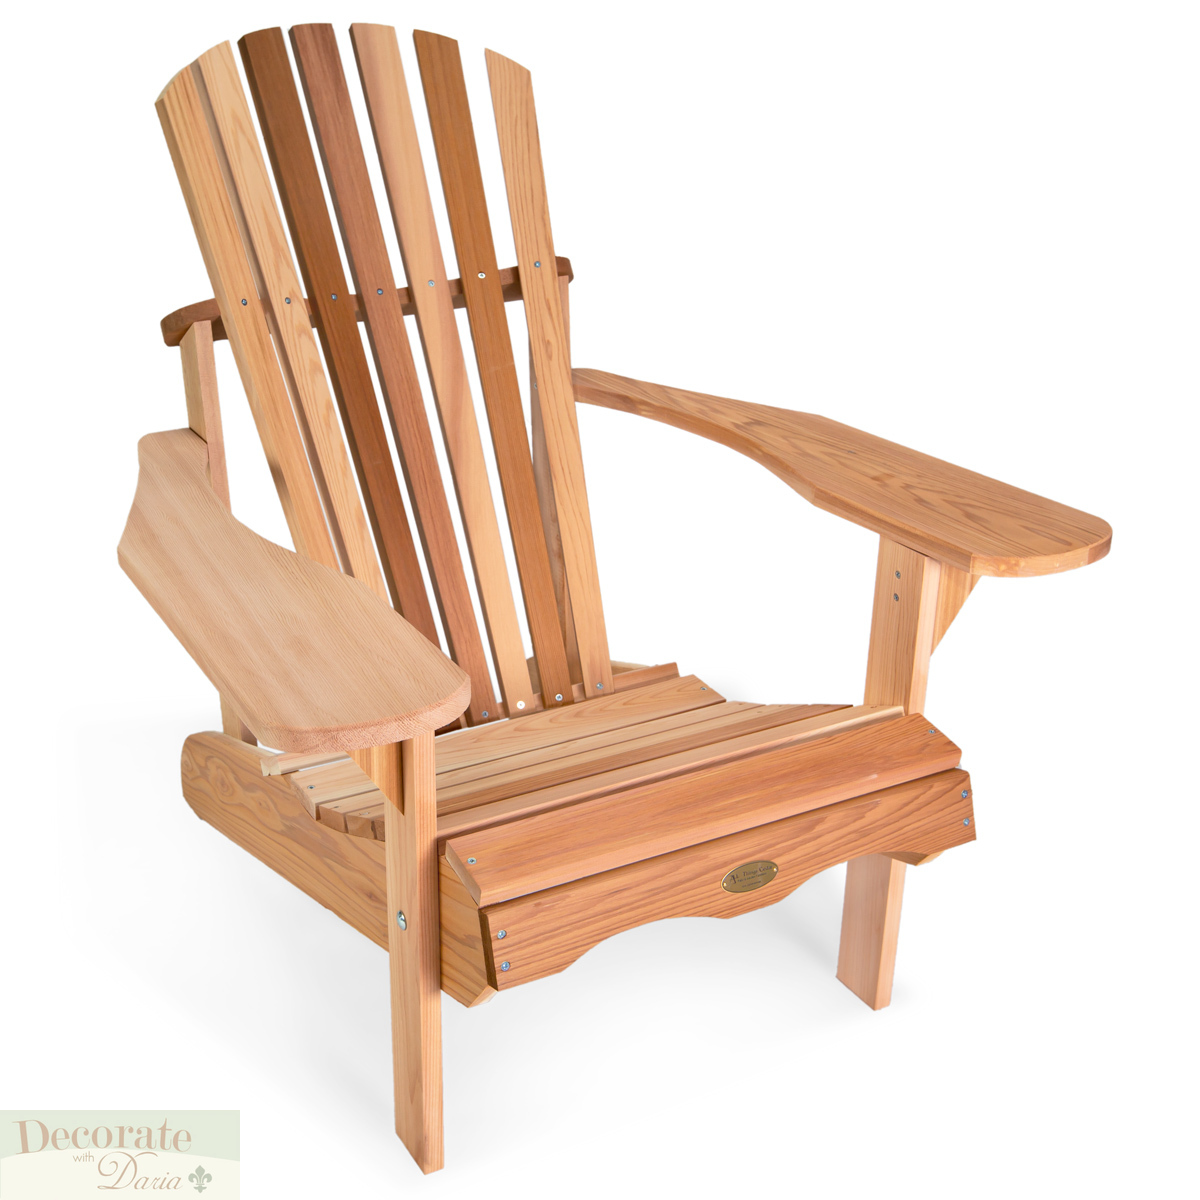 Red Adirondack Chairs Details About Adirondack Chair Western Red Cedar Handcrafted Contoured Seat Comfort Back New